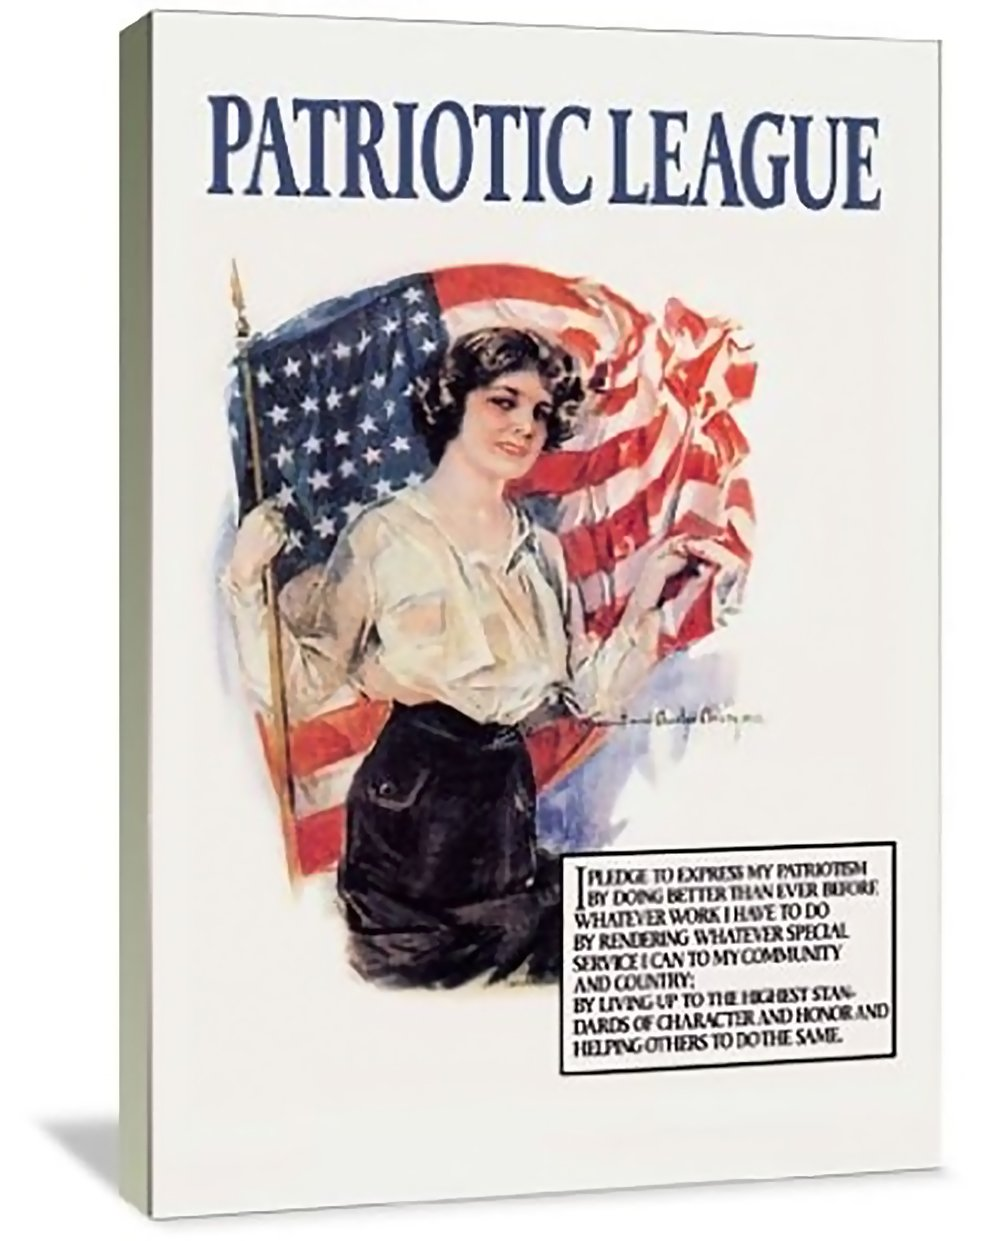 Patriotic League 24 x 36 Gallery Wrapped Canvas Wall Art